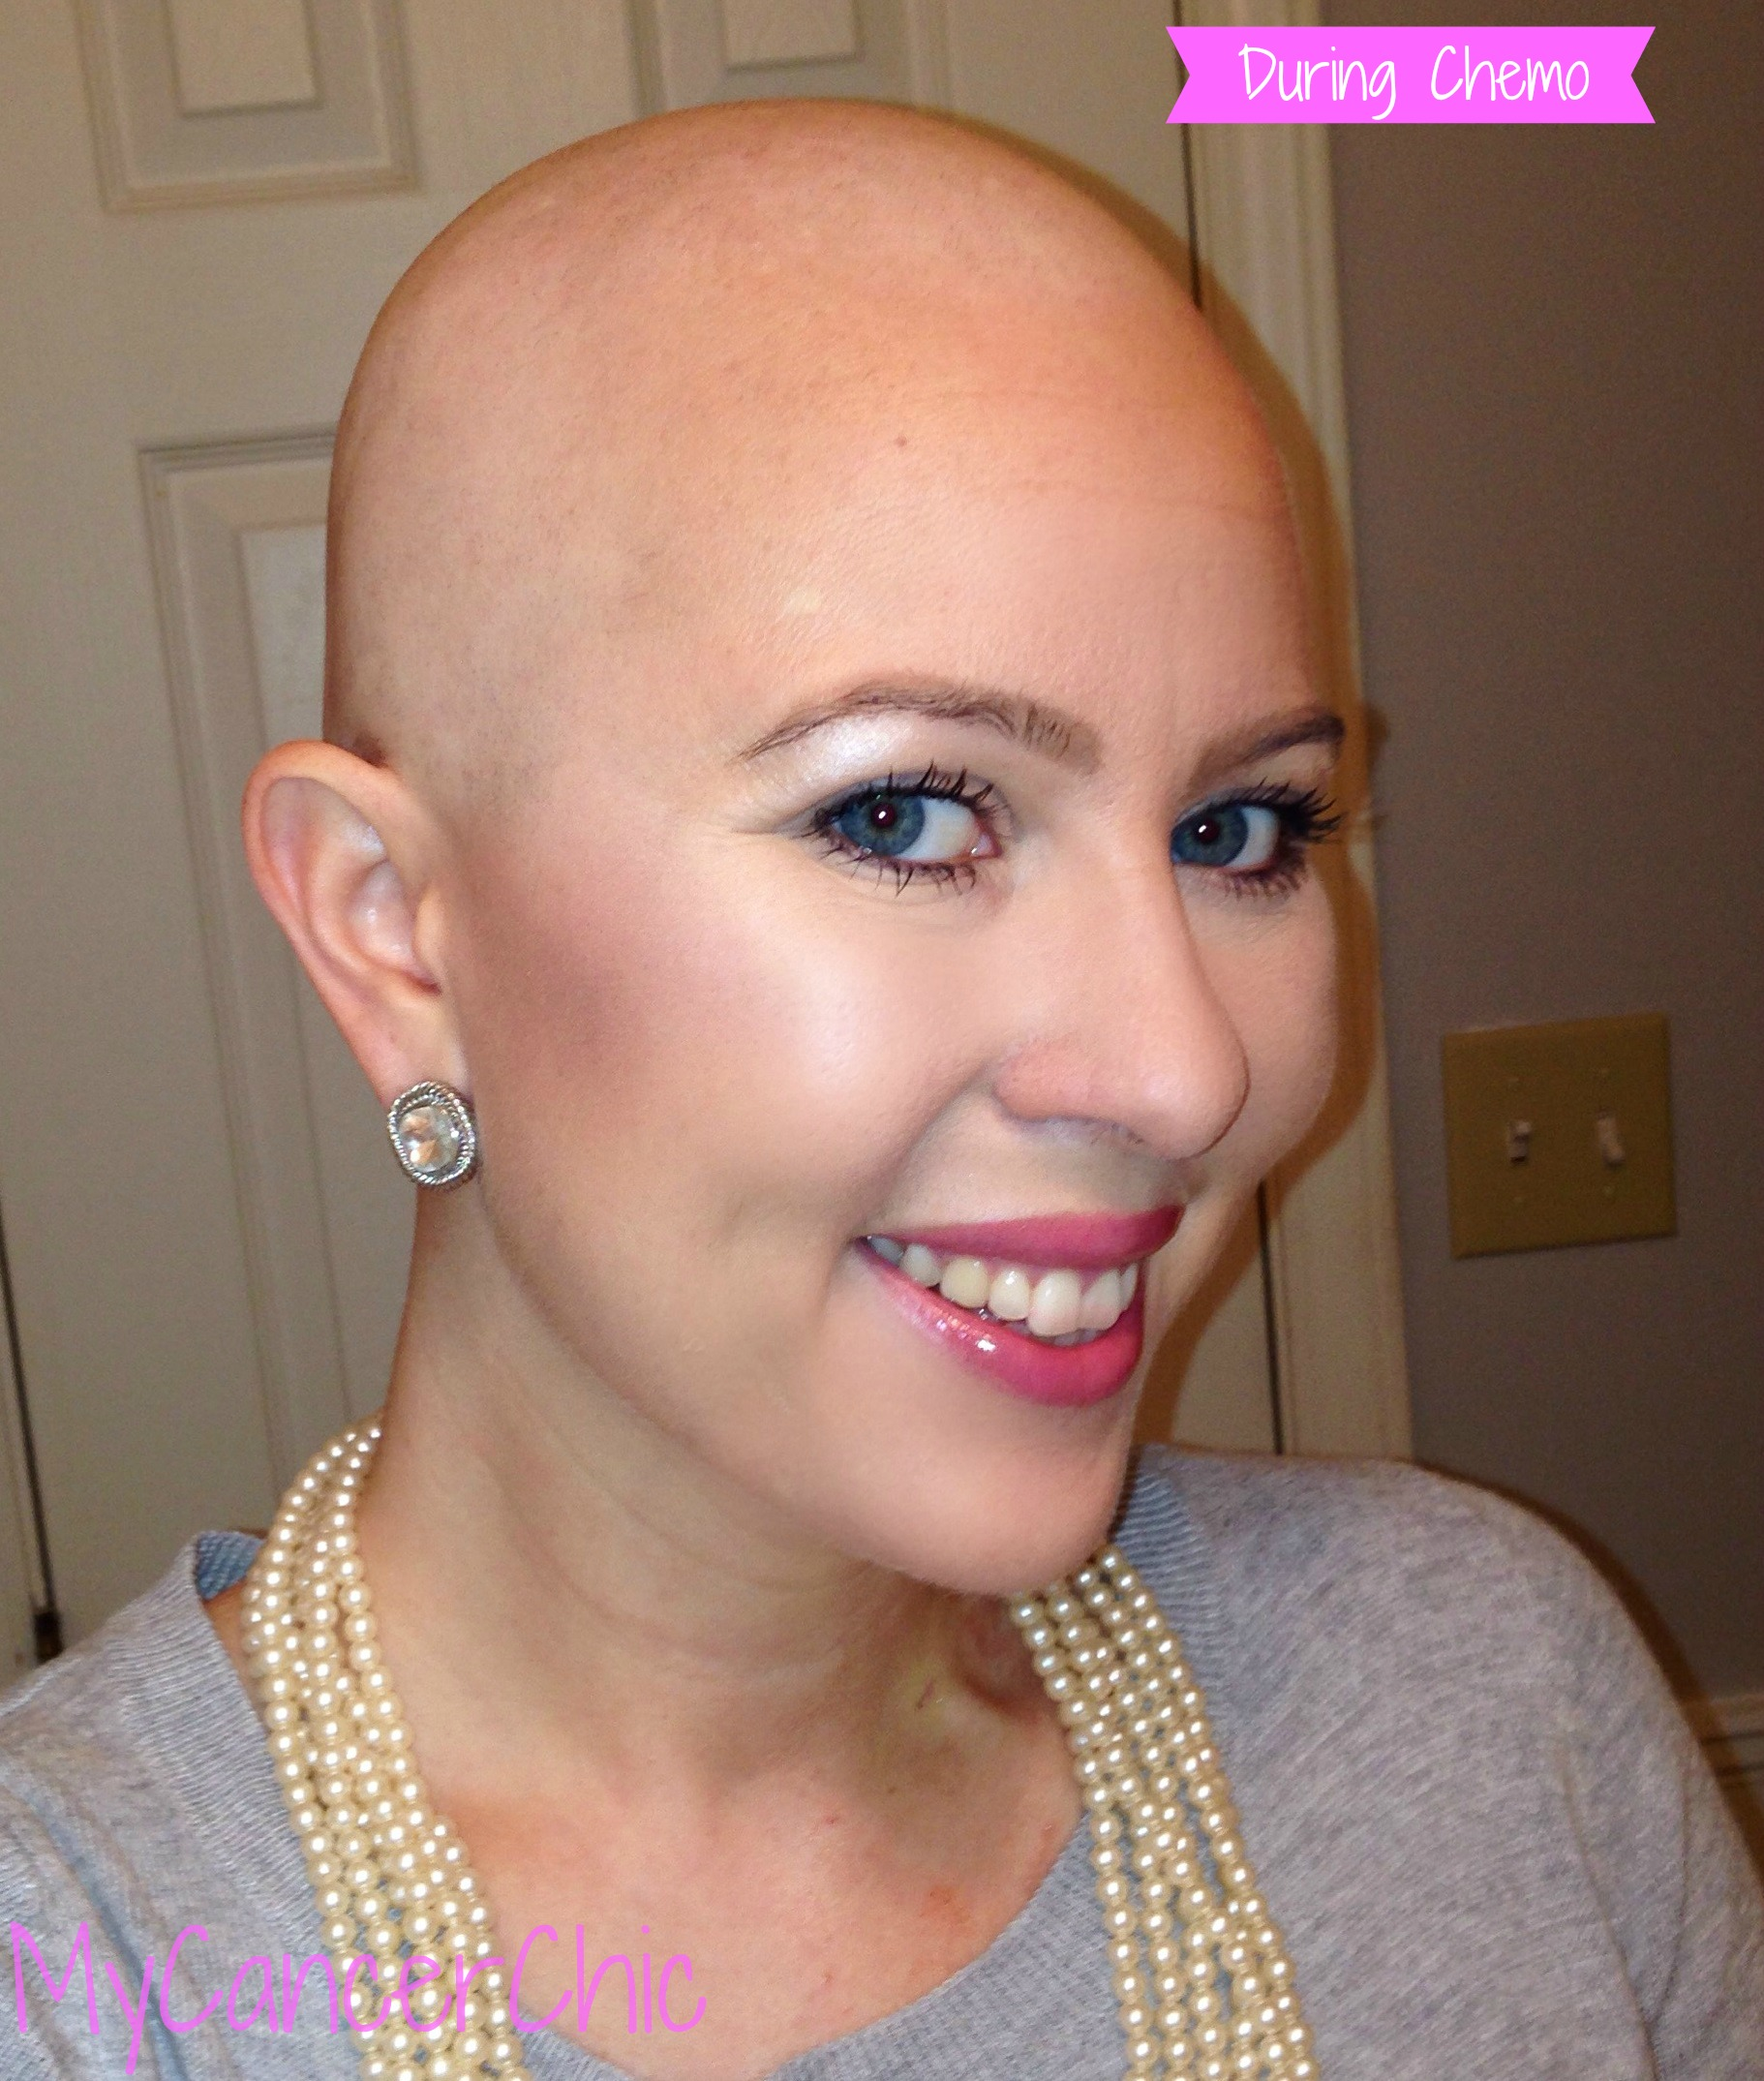 During Chemo Hair Growth